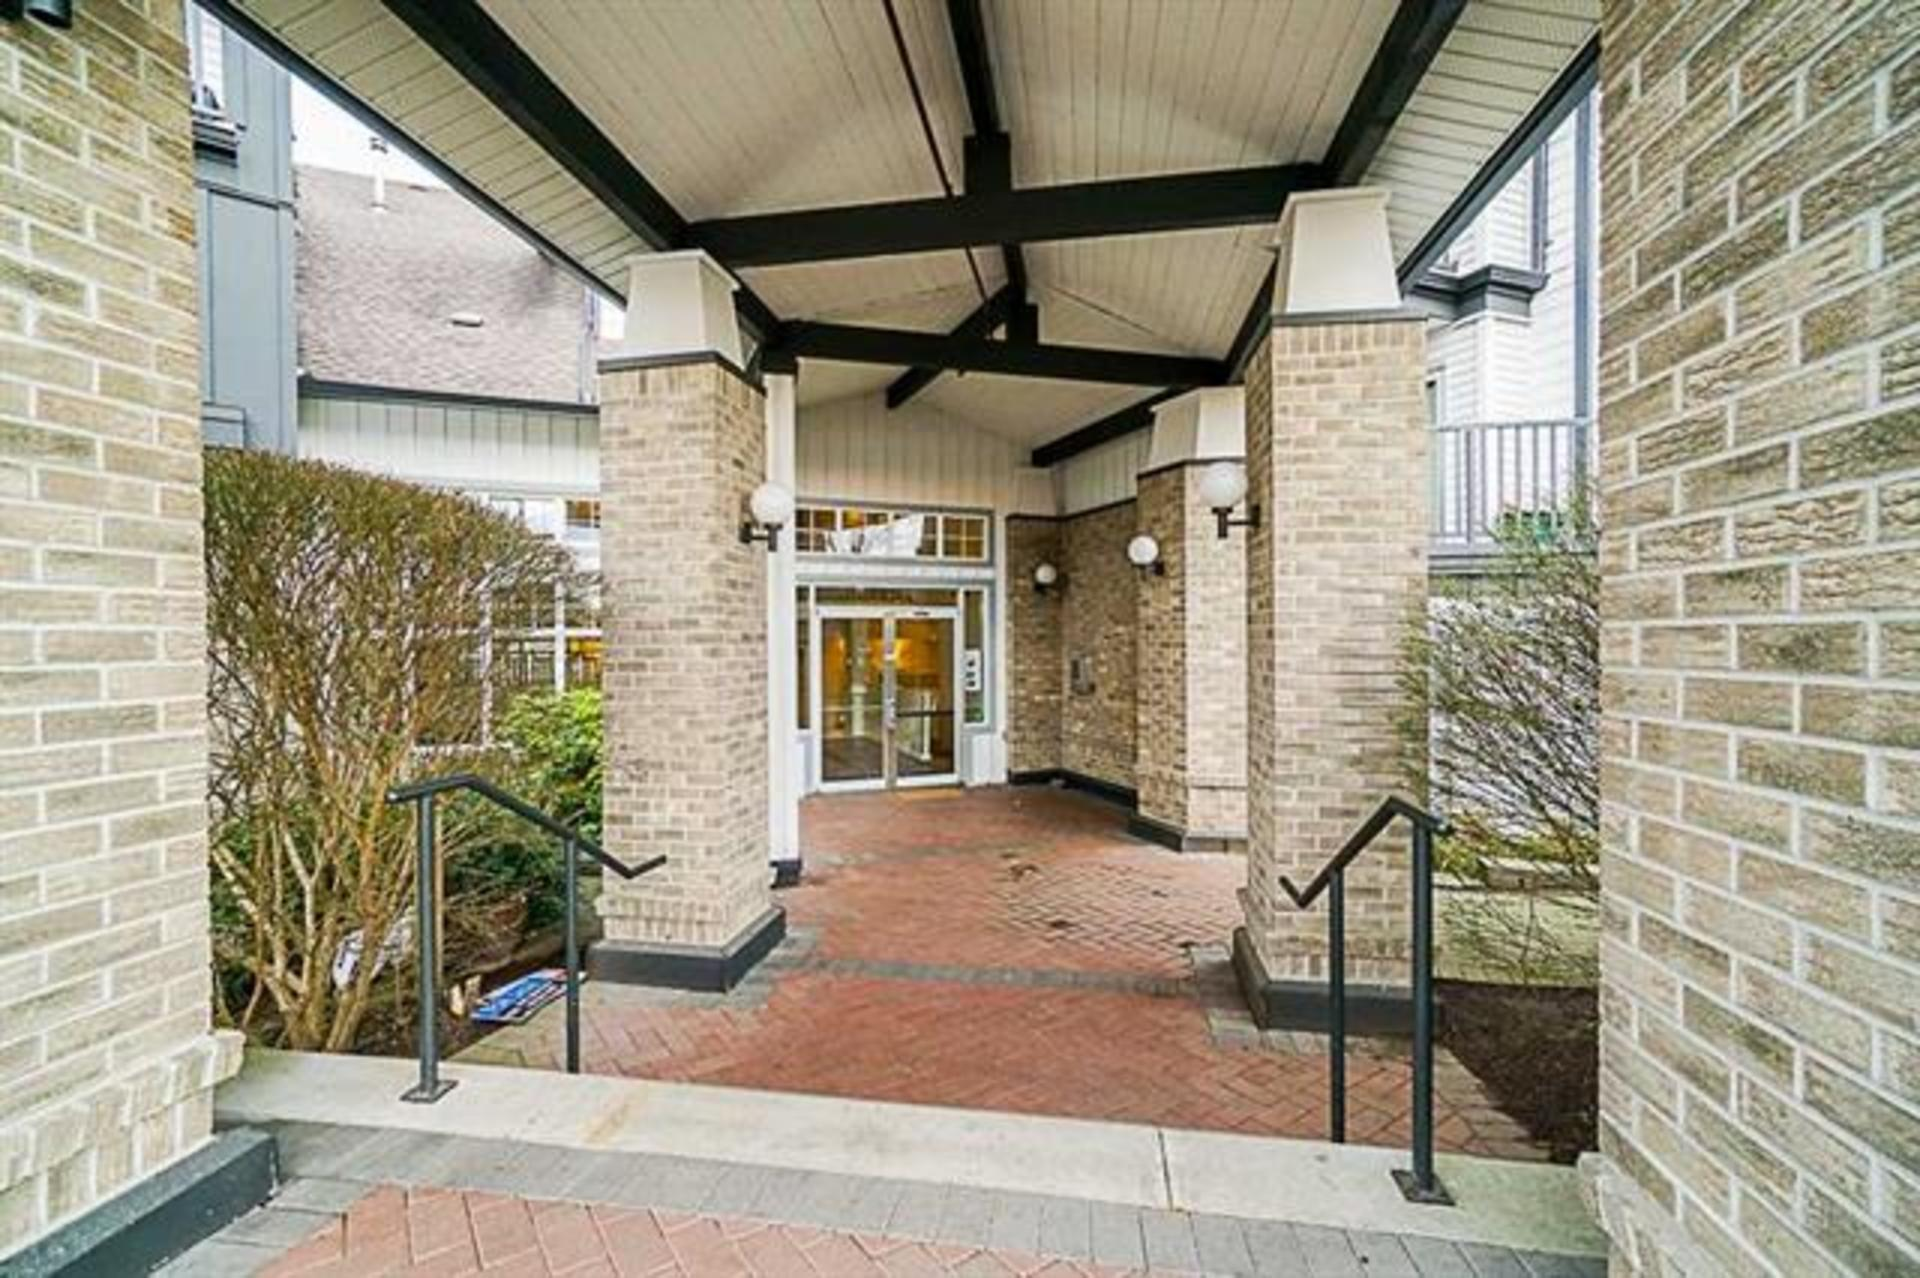 262354030-3 at 205 - 83 Star Crescent, Queensborough, New Westminster